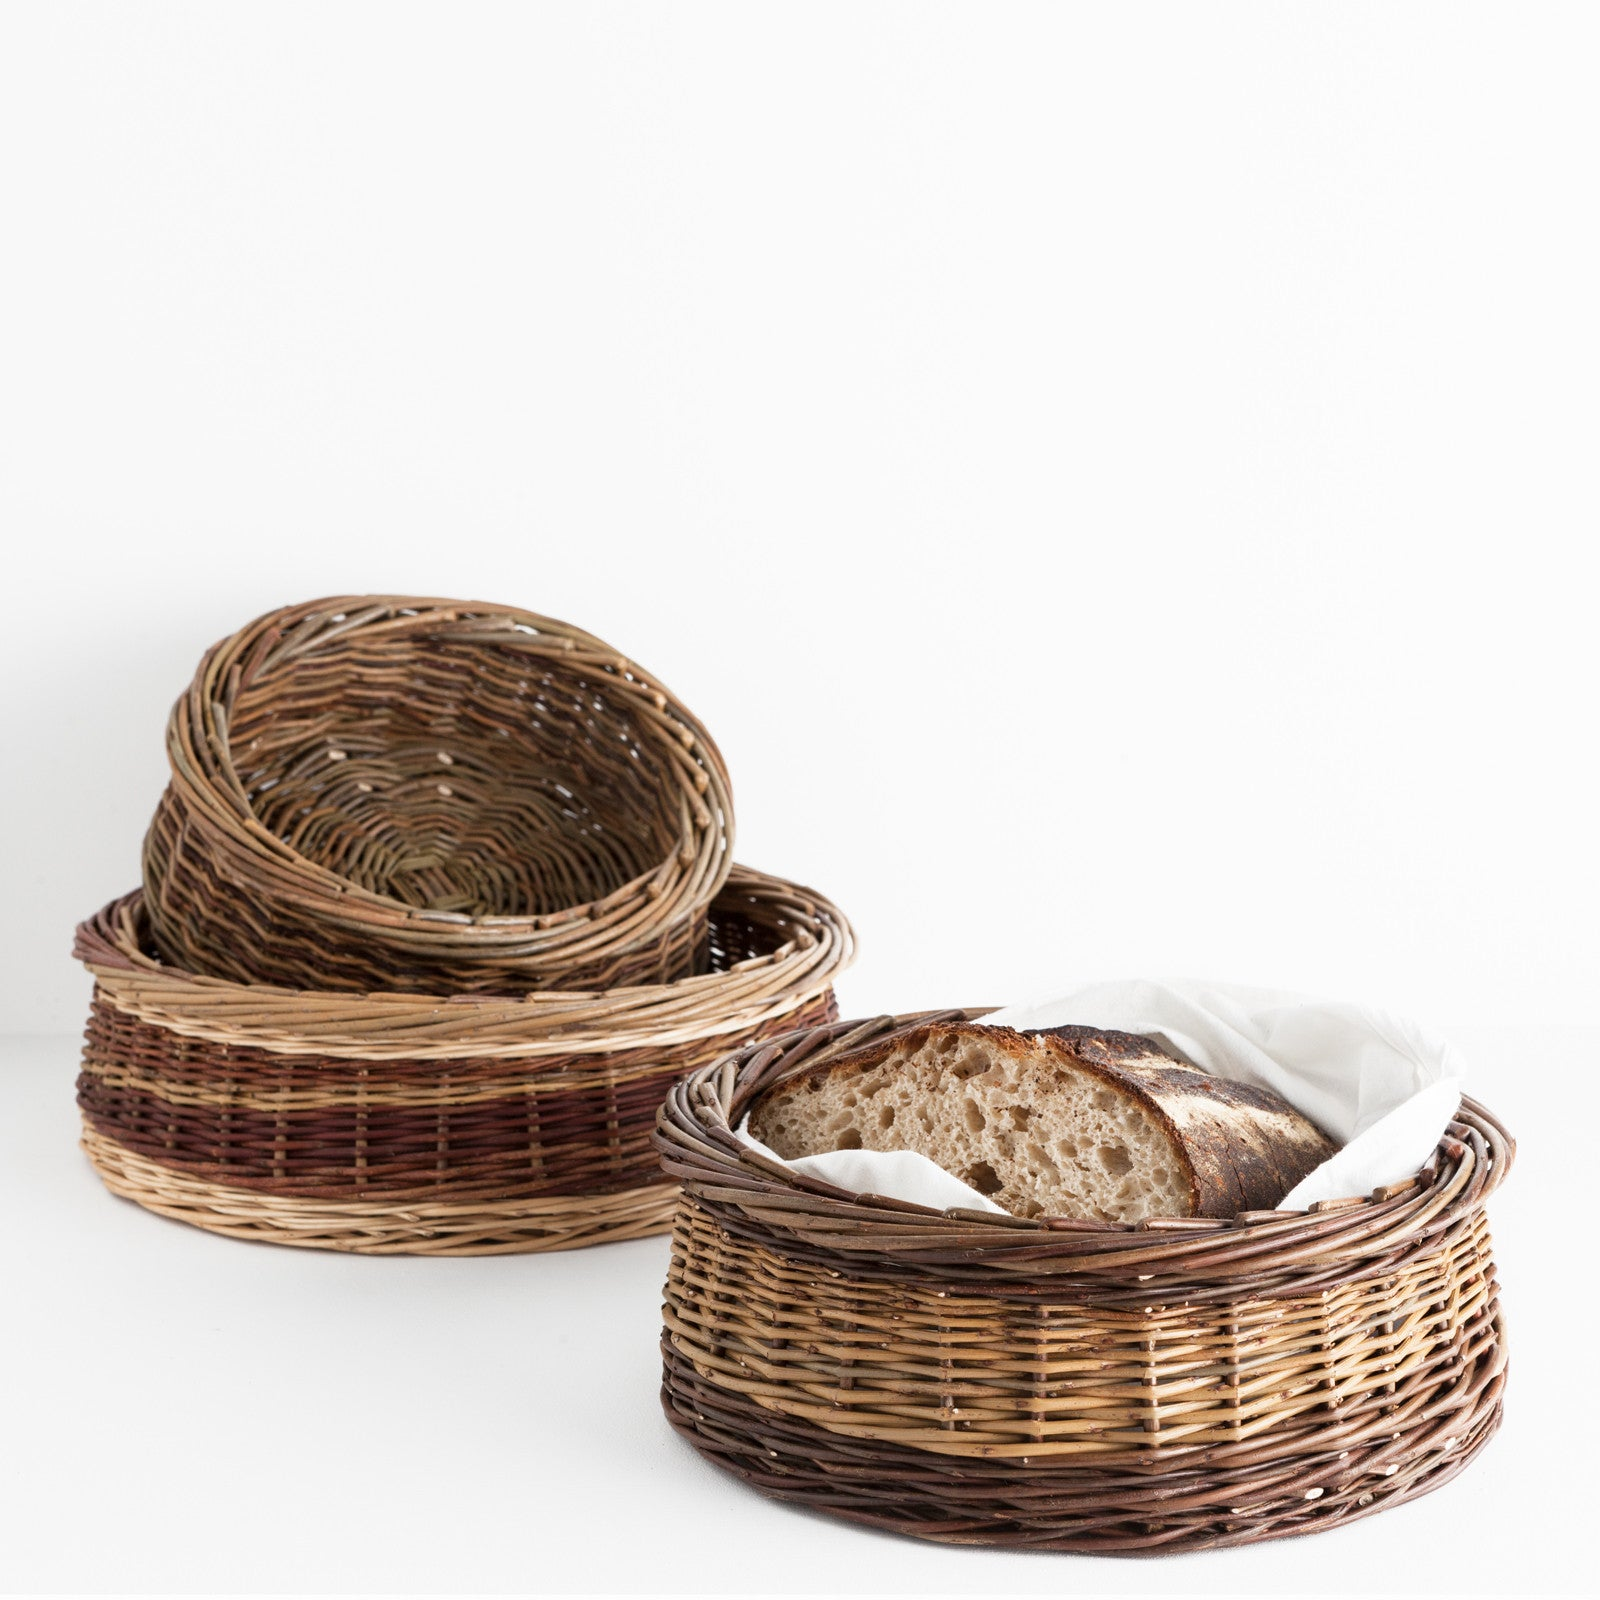 Willow Bread and Fruit Baskets